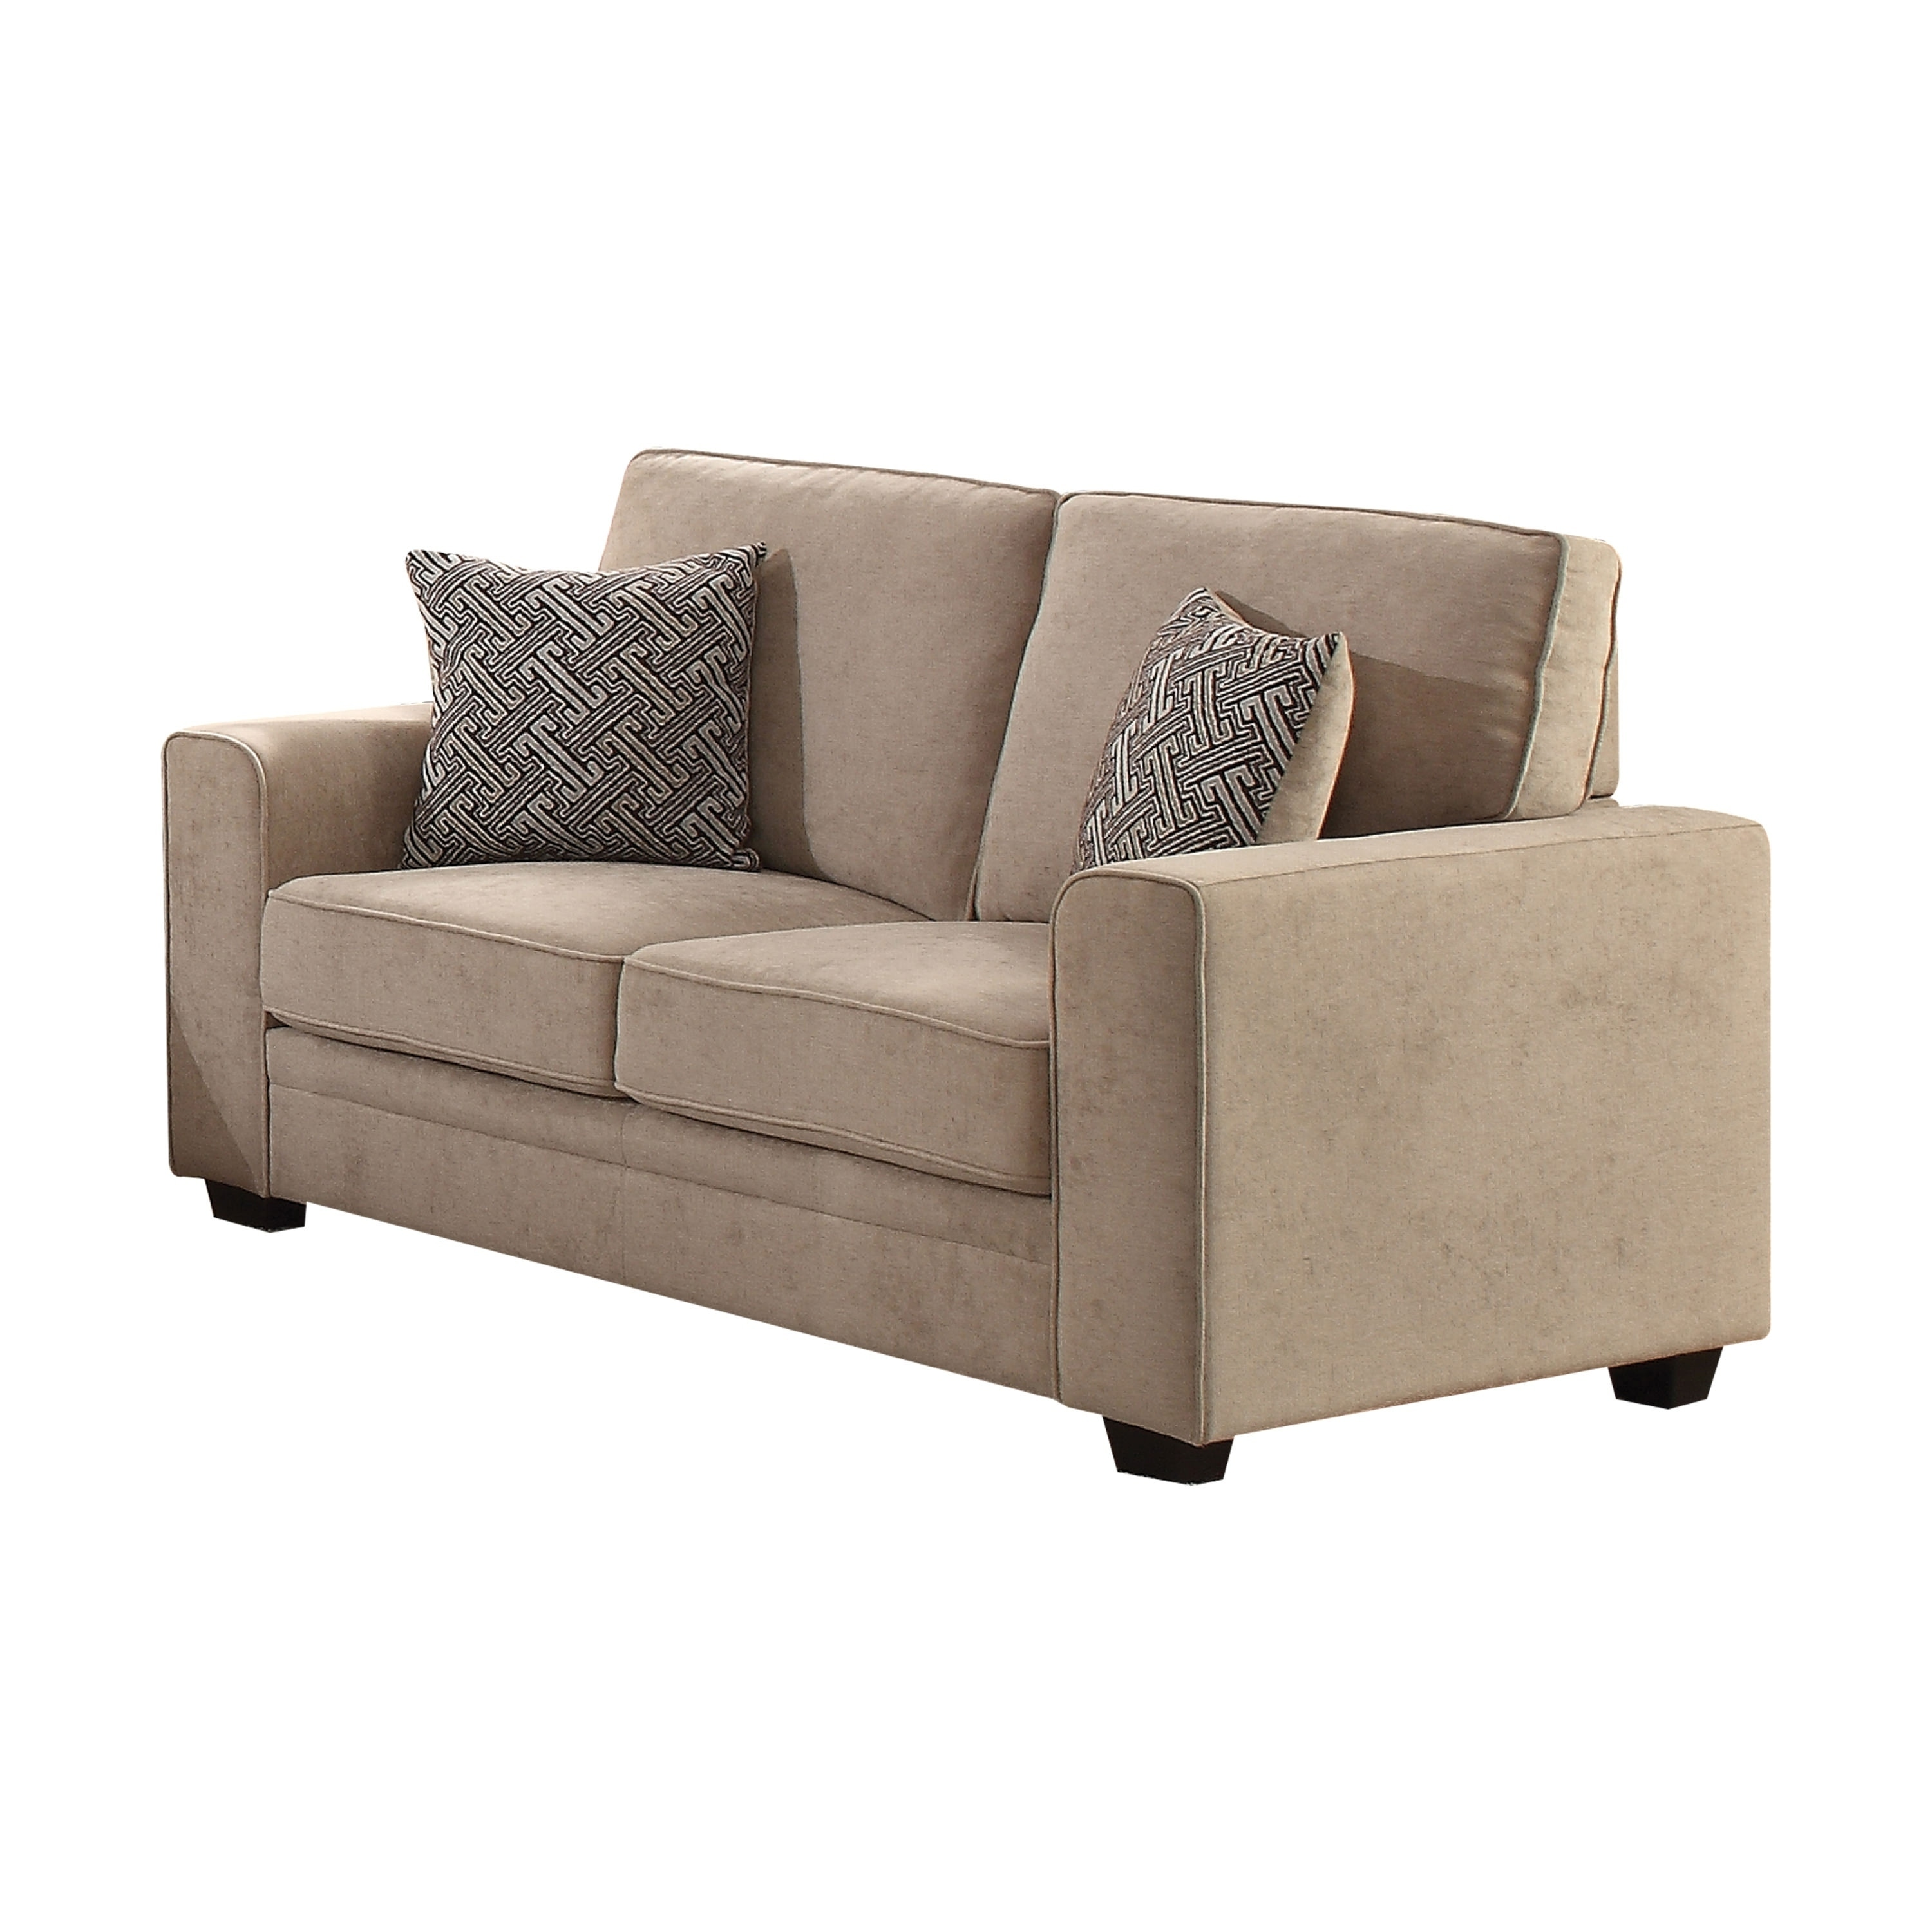 sleeper modular storage of design loveseat love small size full sofa furniture and sectionals couches seat sofas